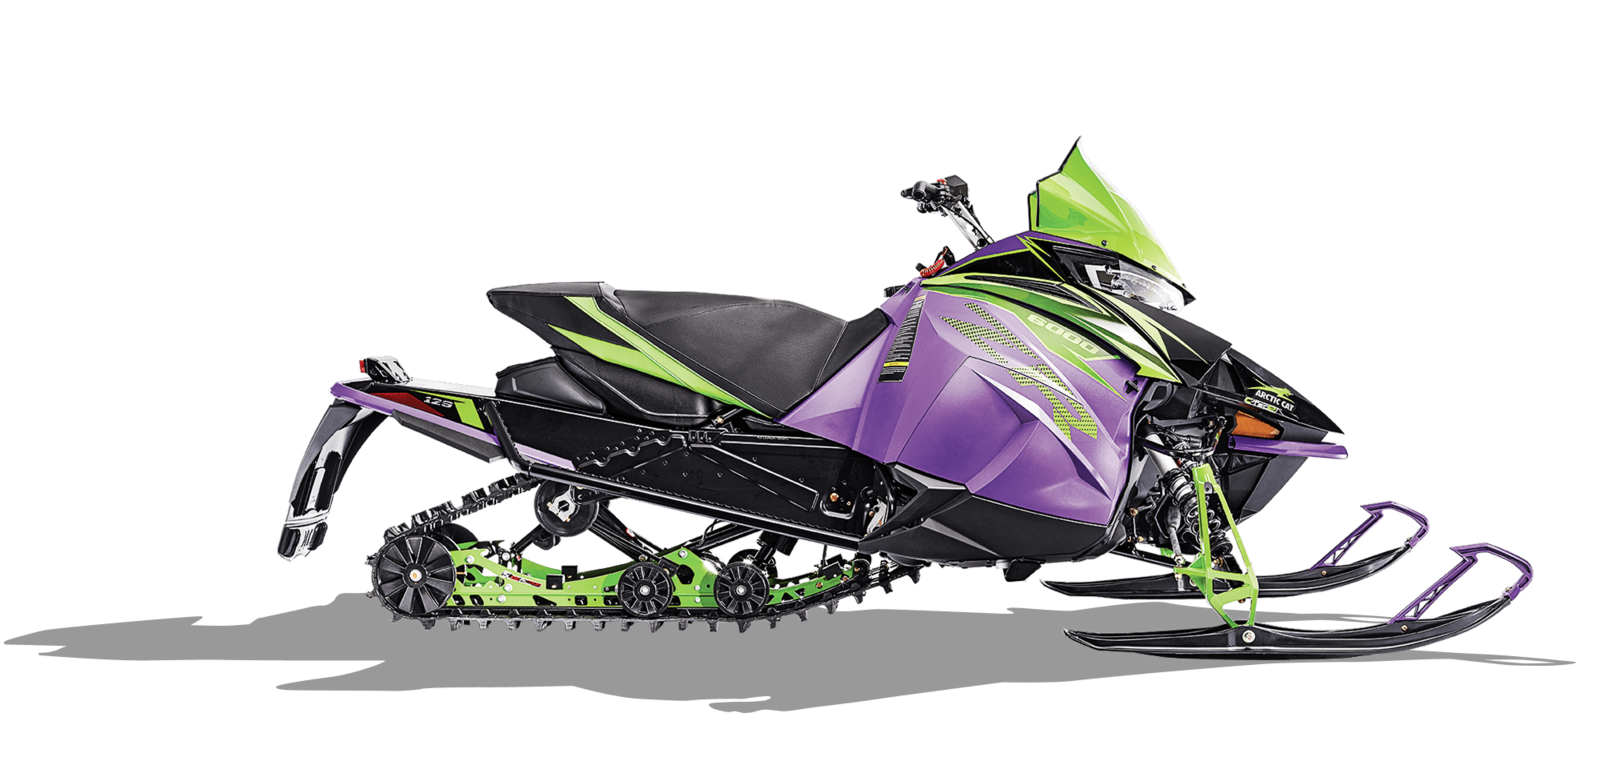 Inventory from Arctic Cat Snowmobiles